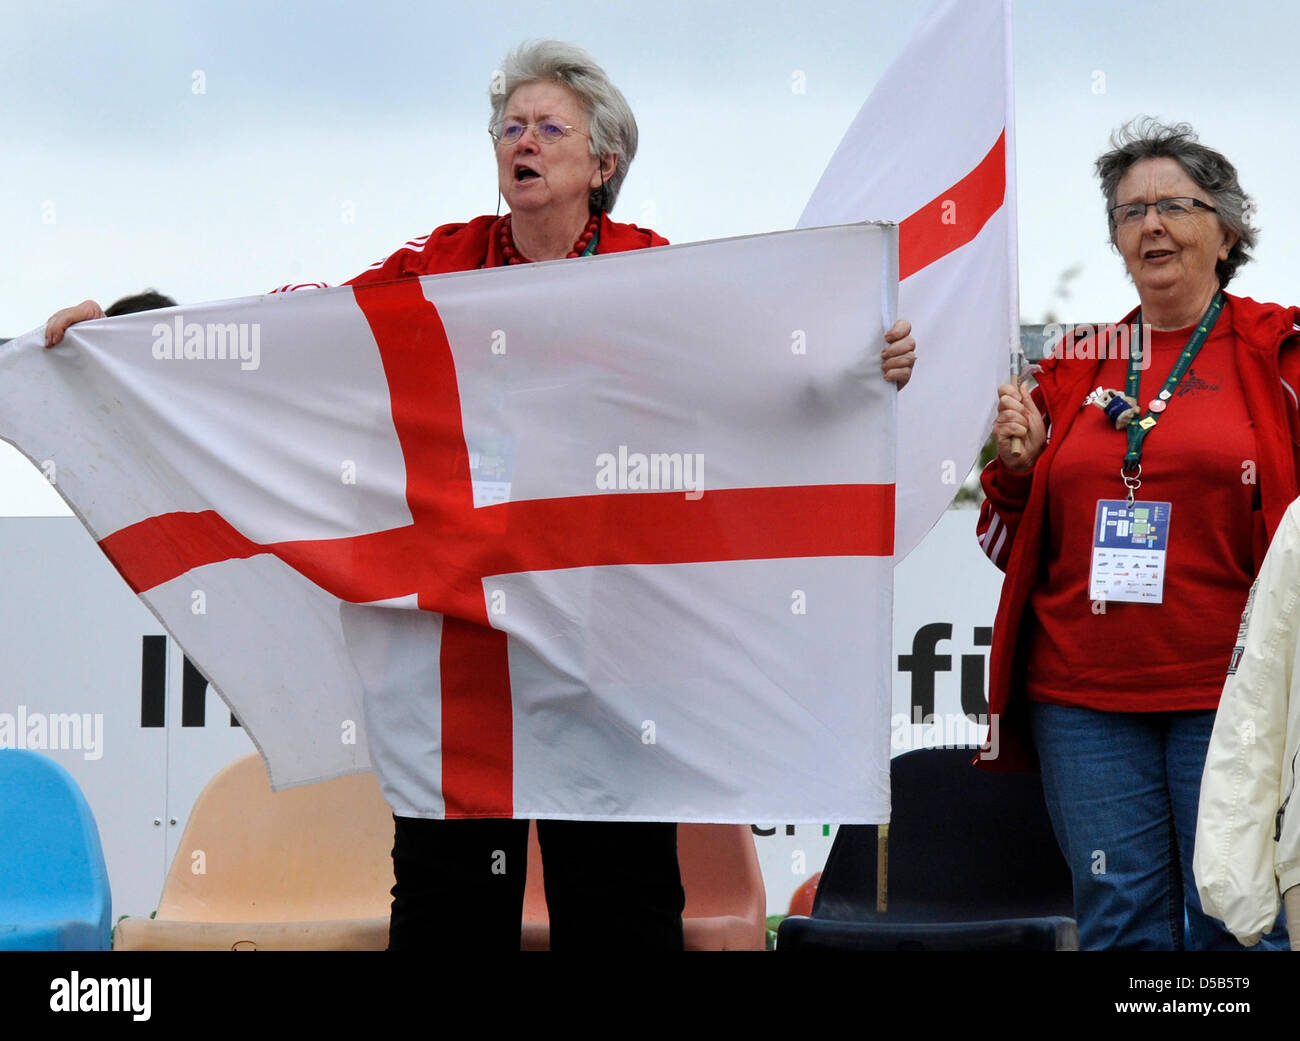 England fans cheer and sing during the playing of the national anthym prior to the match Netherlands vs. England - Stock Image